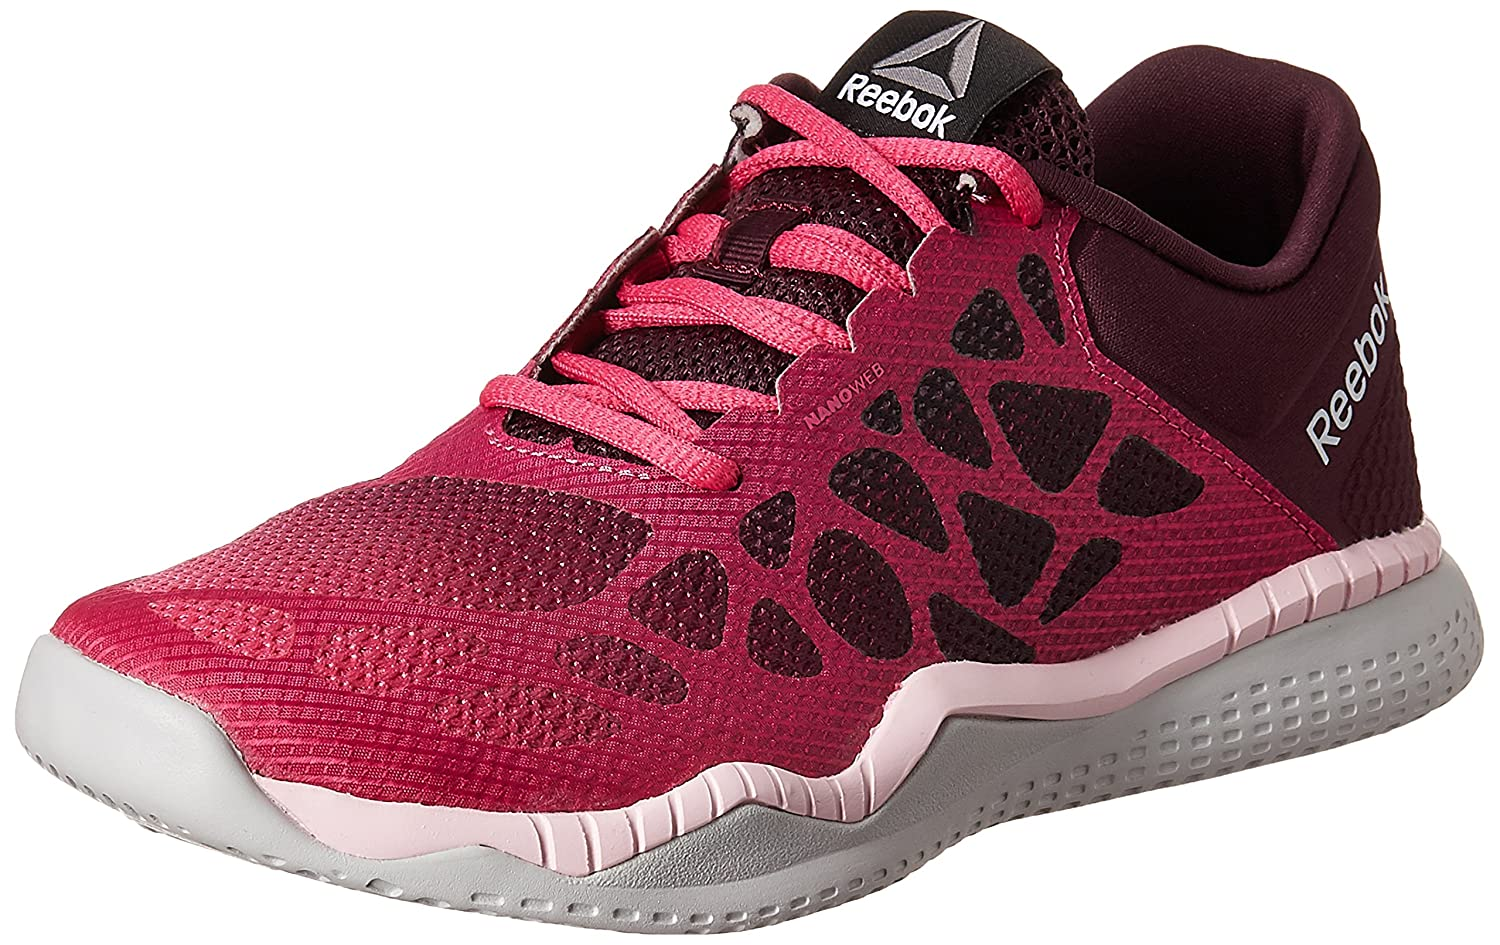 a9b9fe686db Buy reebok shoes 1000 to 2000 Sport Online - 59% OFF!